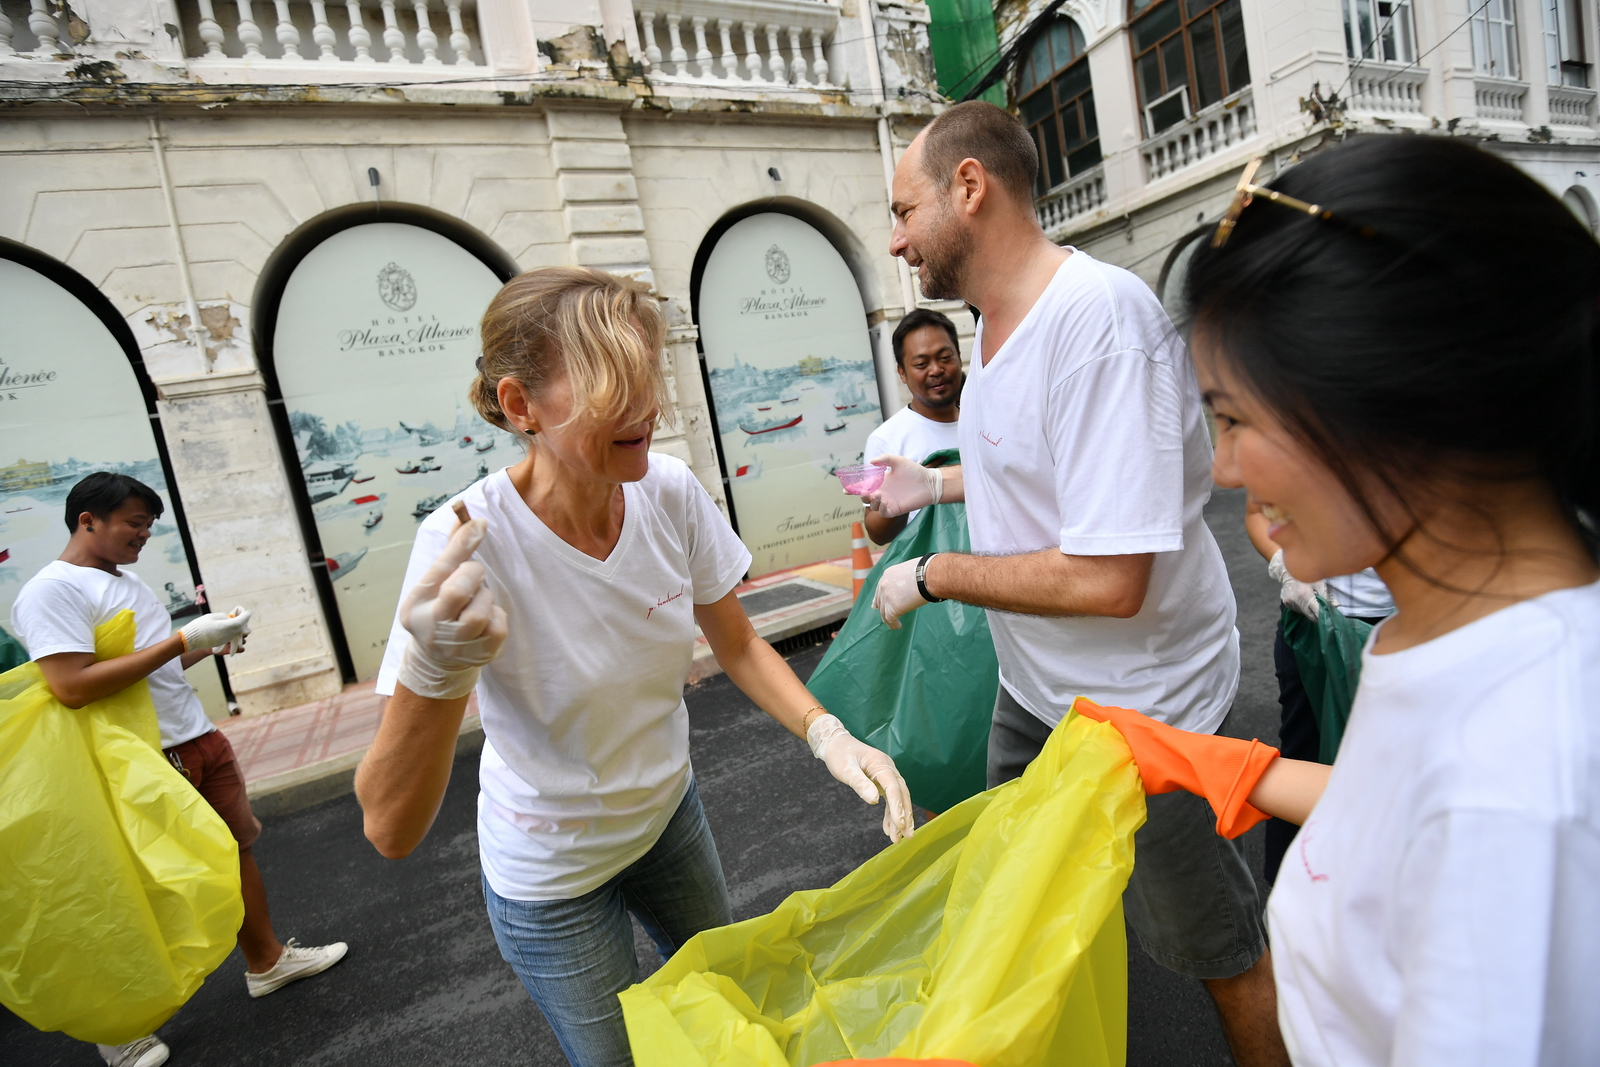 PTendercool-Event-Clean Up The World-190921-044